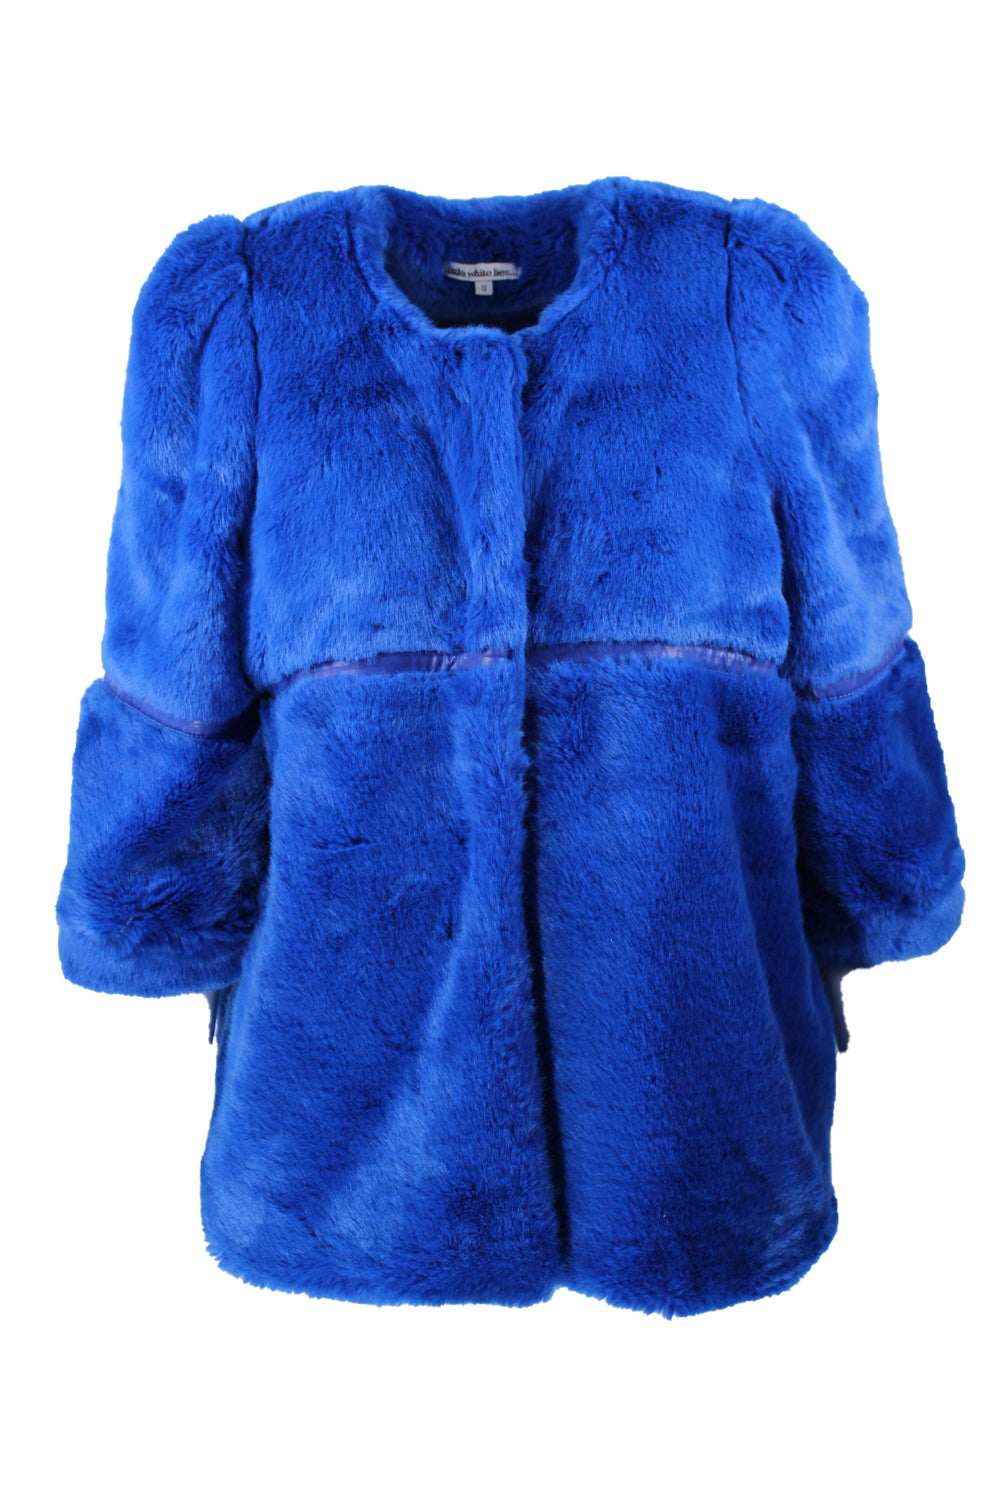 little white lies... blue faux fur jacket. featuring short sleeves, and faux leather trim.